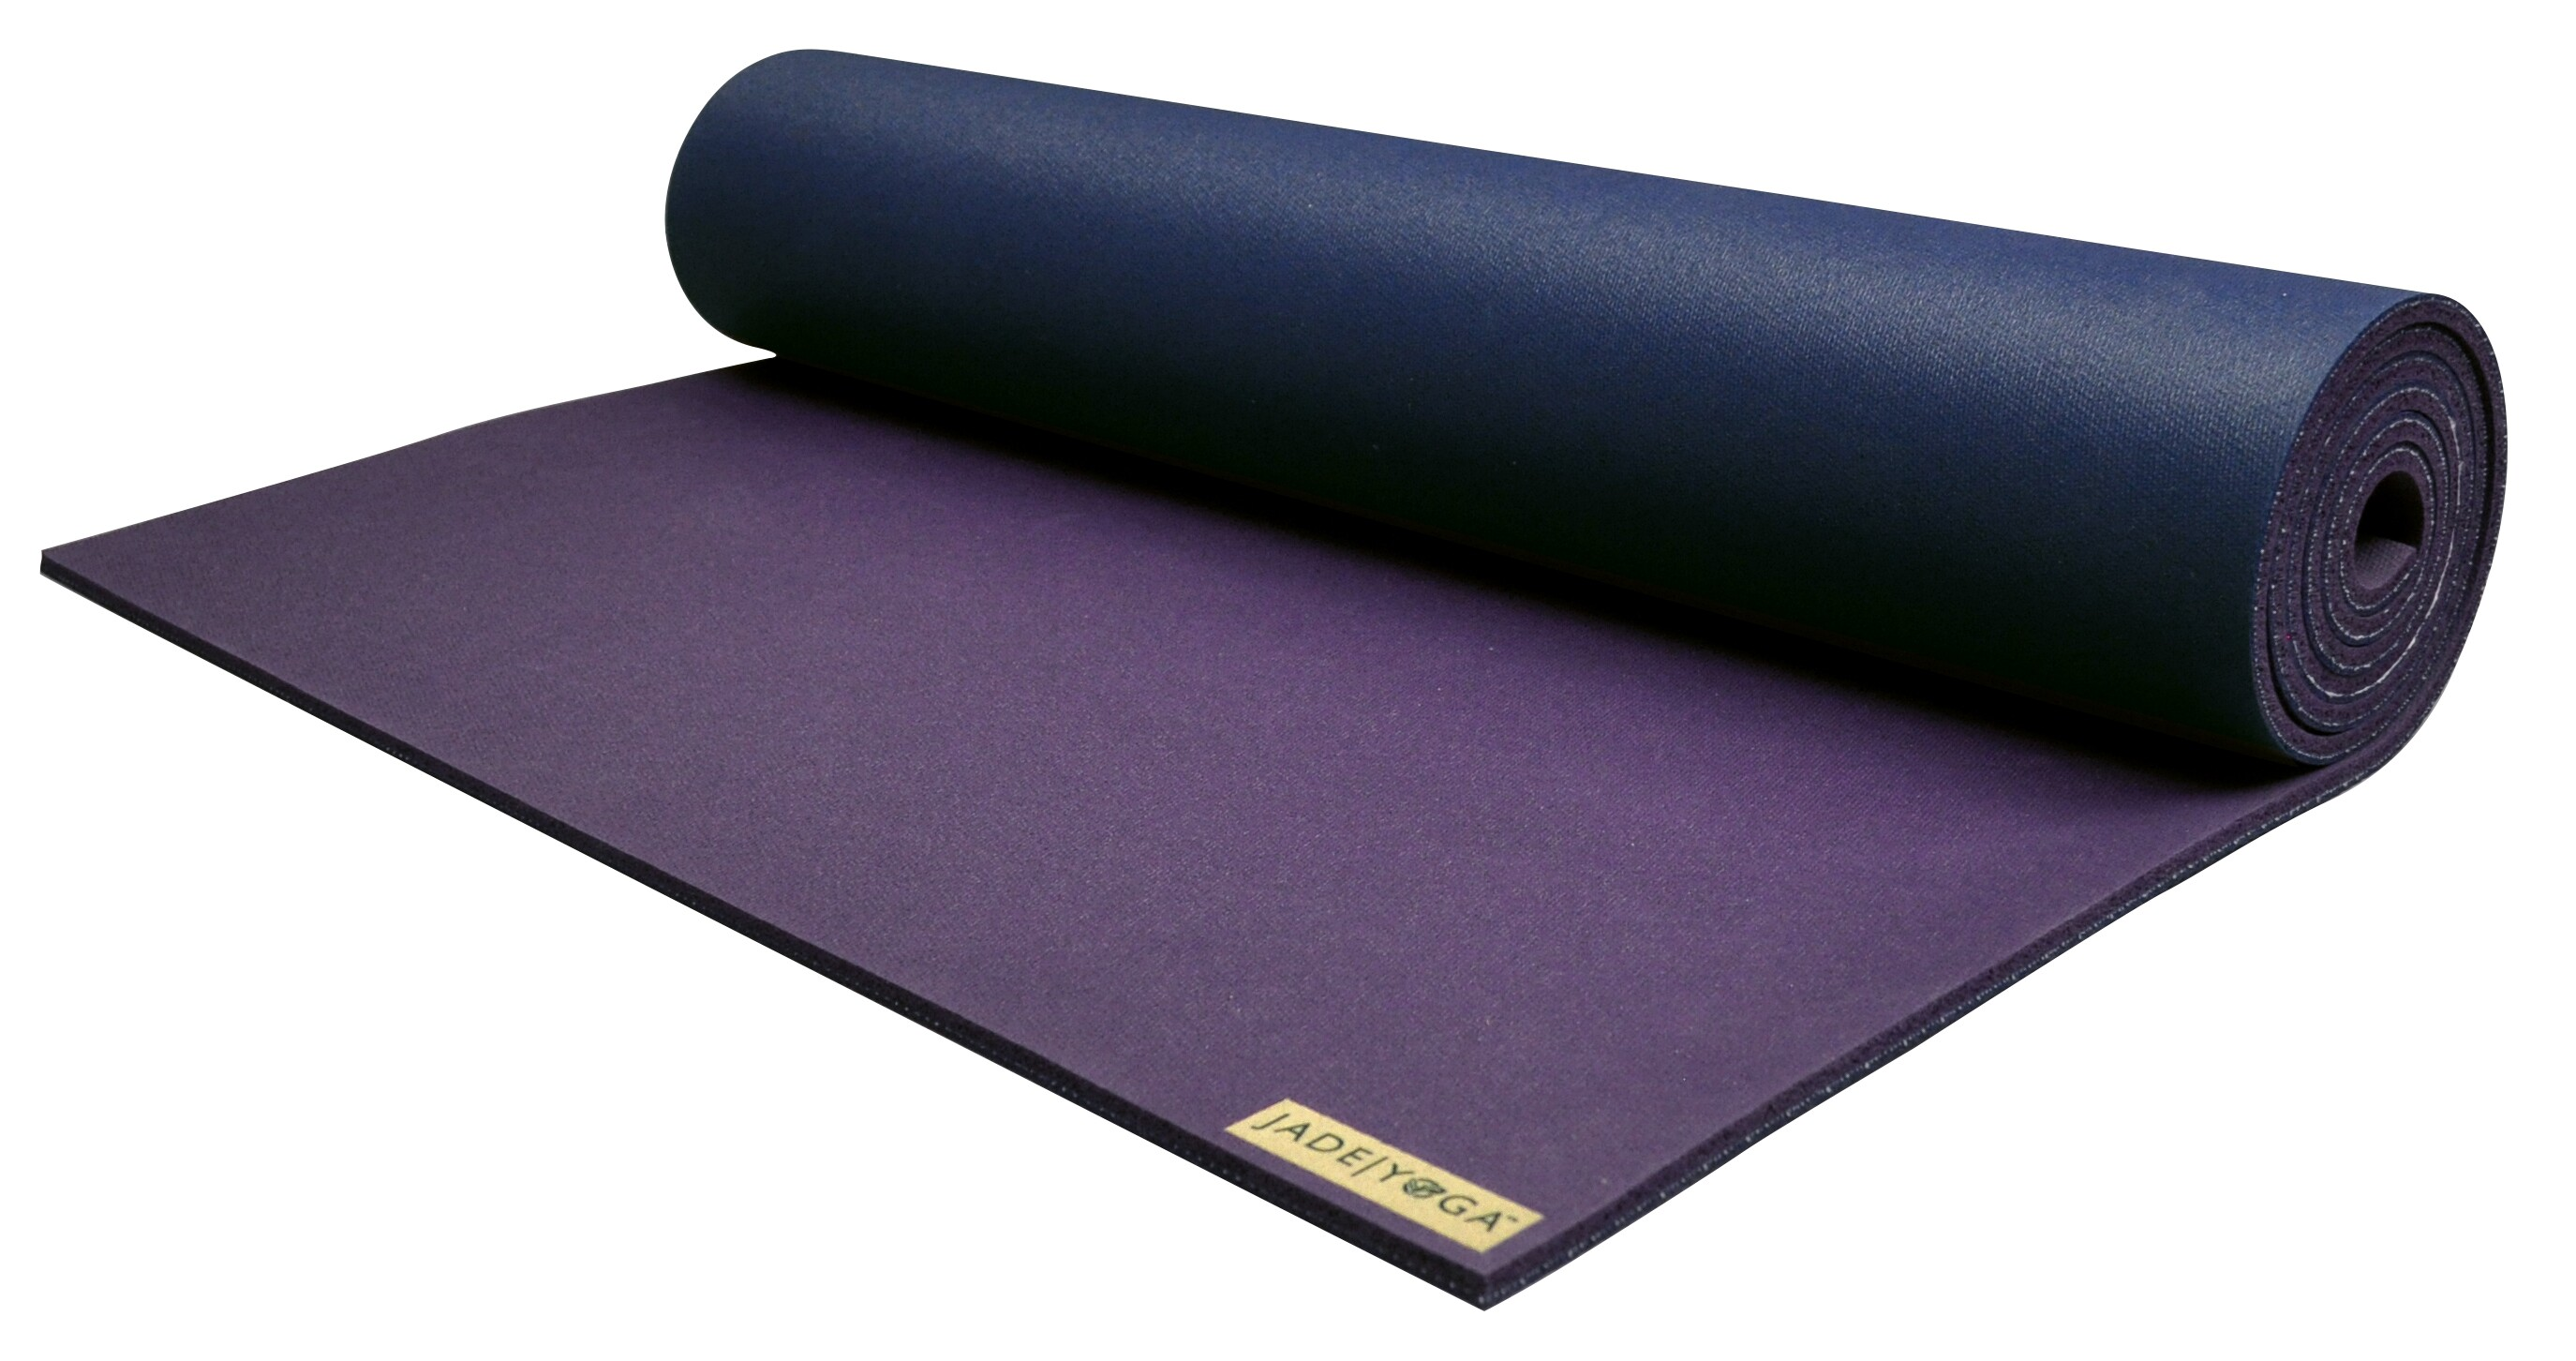 aarp, the girlfriend, jade yoga, yoga mat